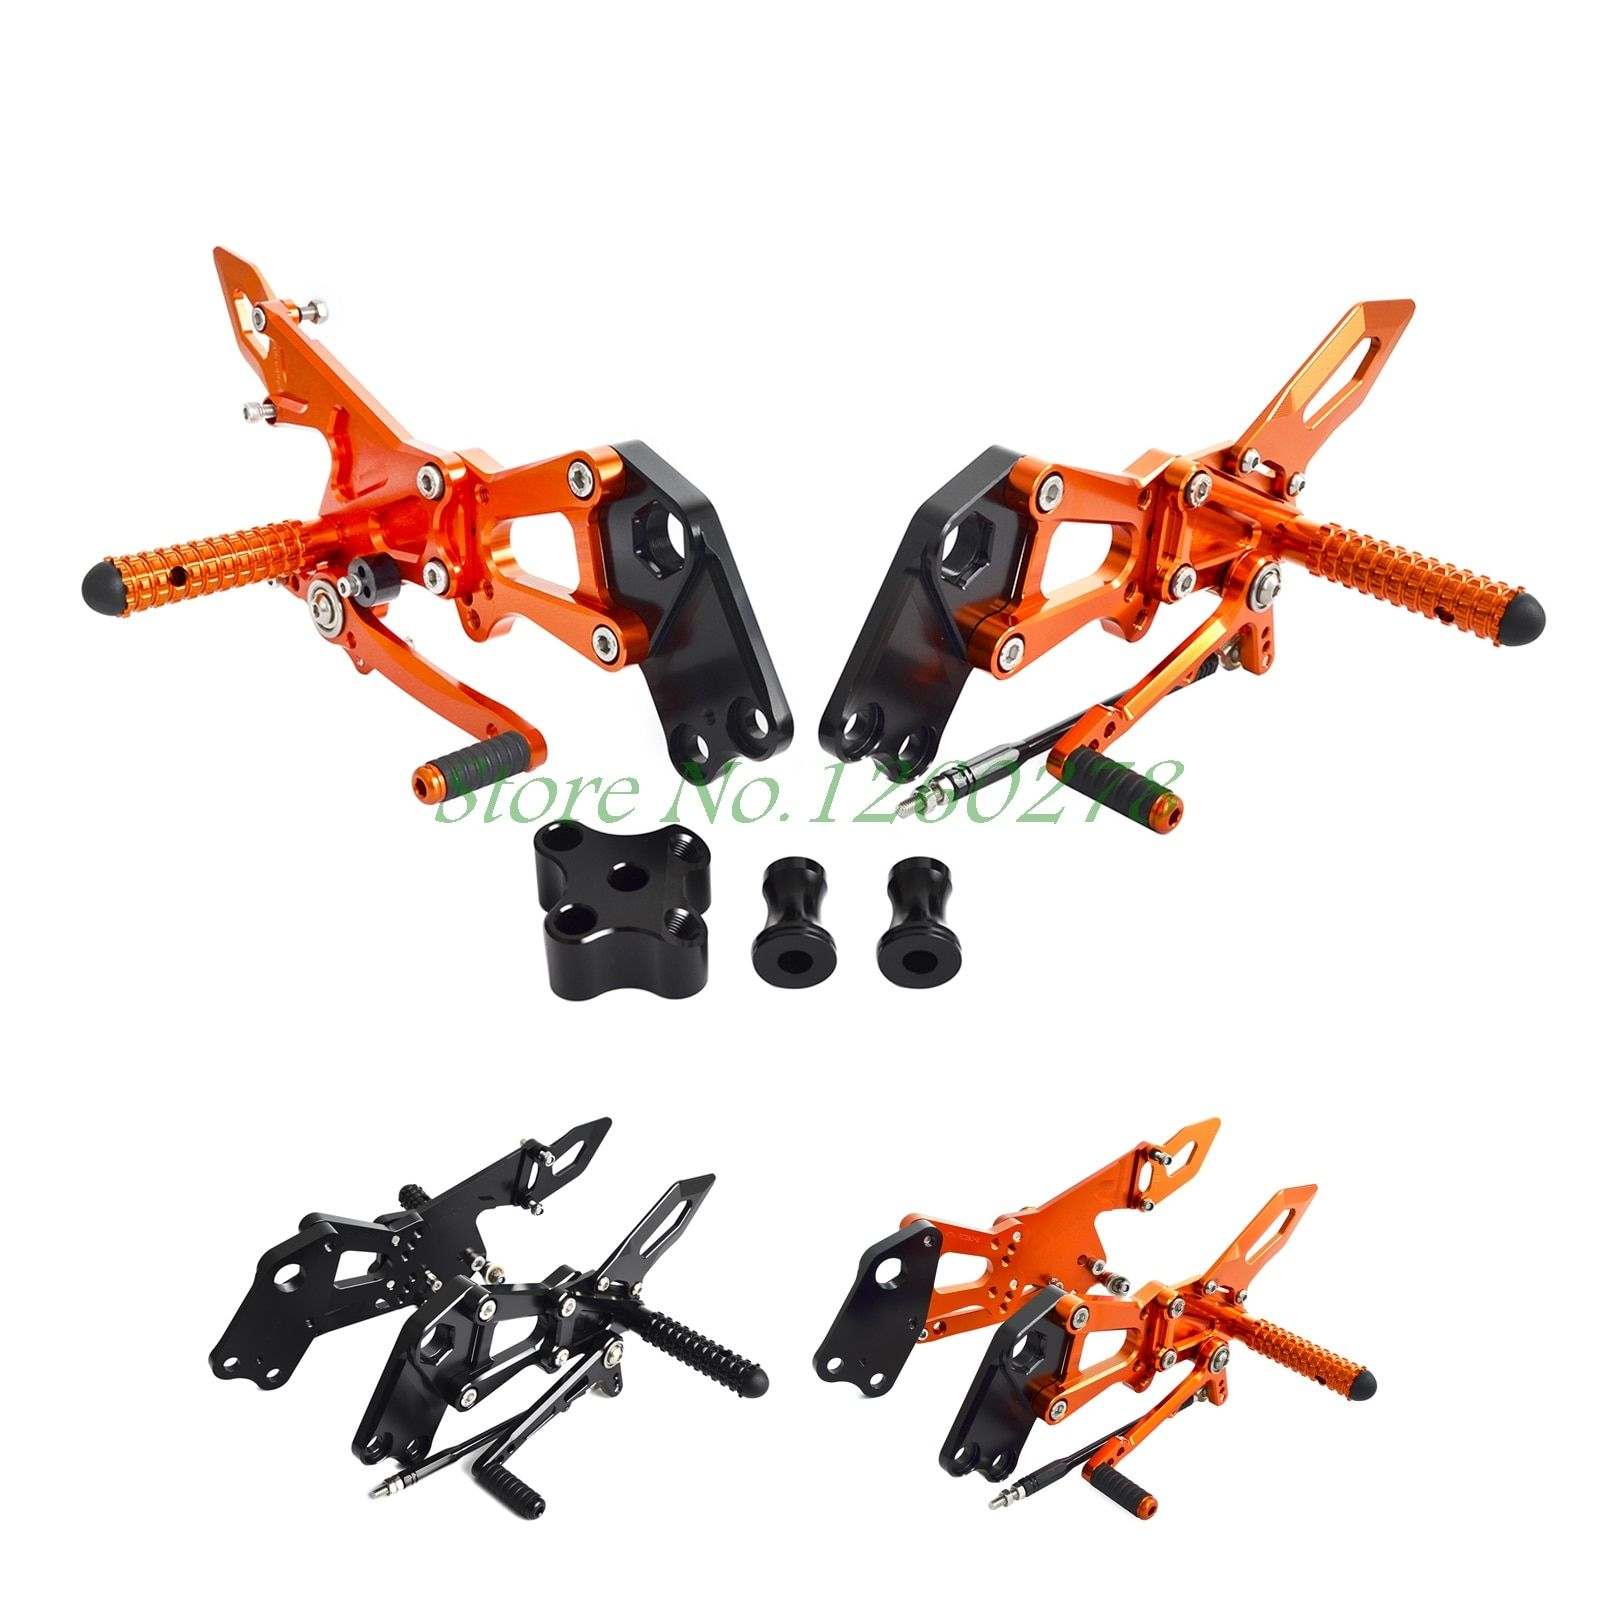 Motorcycle Rearsets Footrest Peg Rear Set For KTM RC 125 200 390 2014 2015 2016 2017 RC125 RC200 RC390